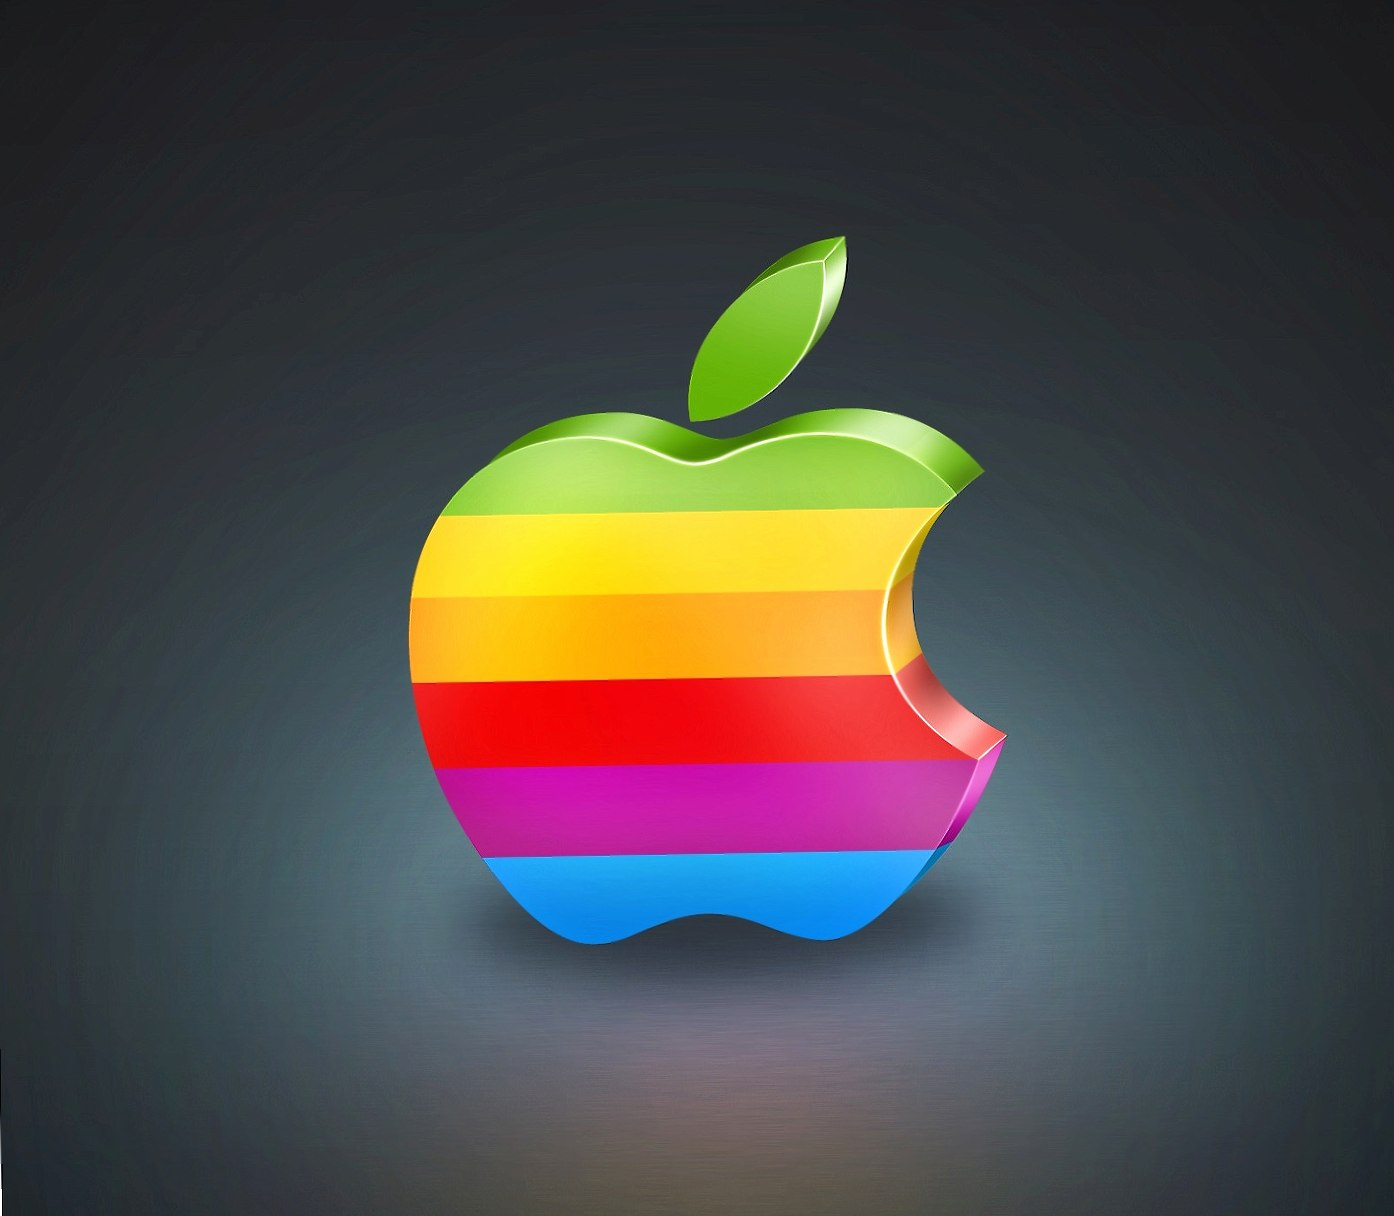 apple logo old wallpapers HD quality